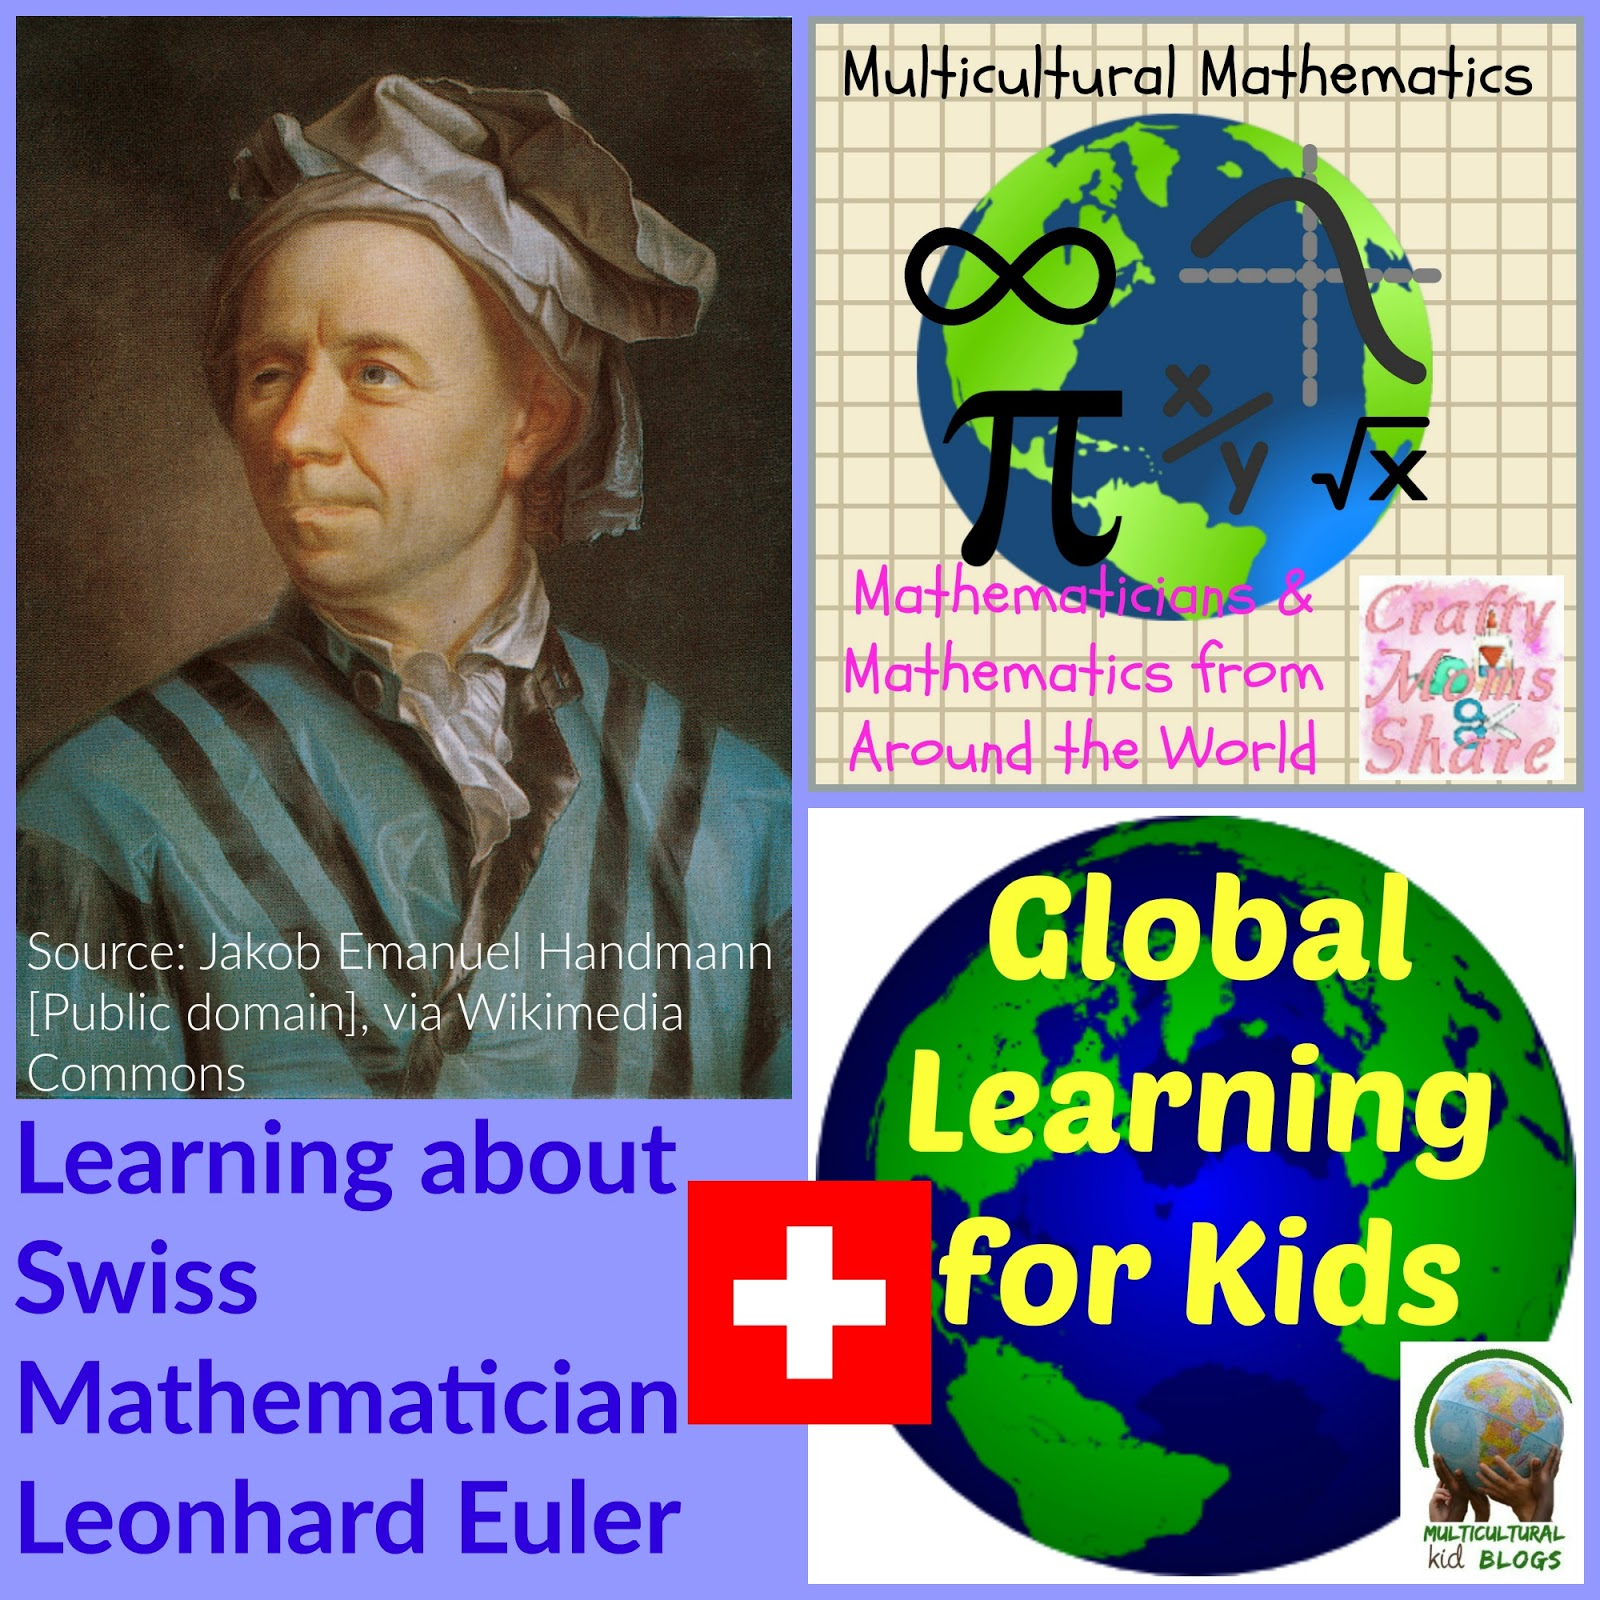 leonhard euler math prodigy of switzerland Leonhard euler (15 april 1707 – 18 september 1783) was a pioneering swiss   he also introduced much of the modern mathematical terminology and  euler  was featured on the sixth series of the swiss 10-franc banknote  bernoulli  archimedes the math genius who invented his own language.